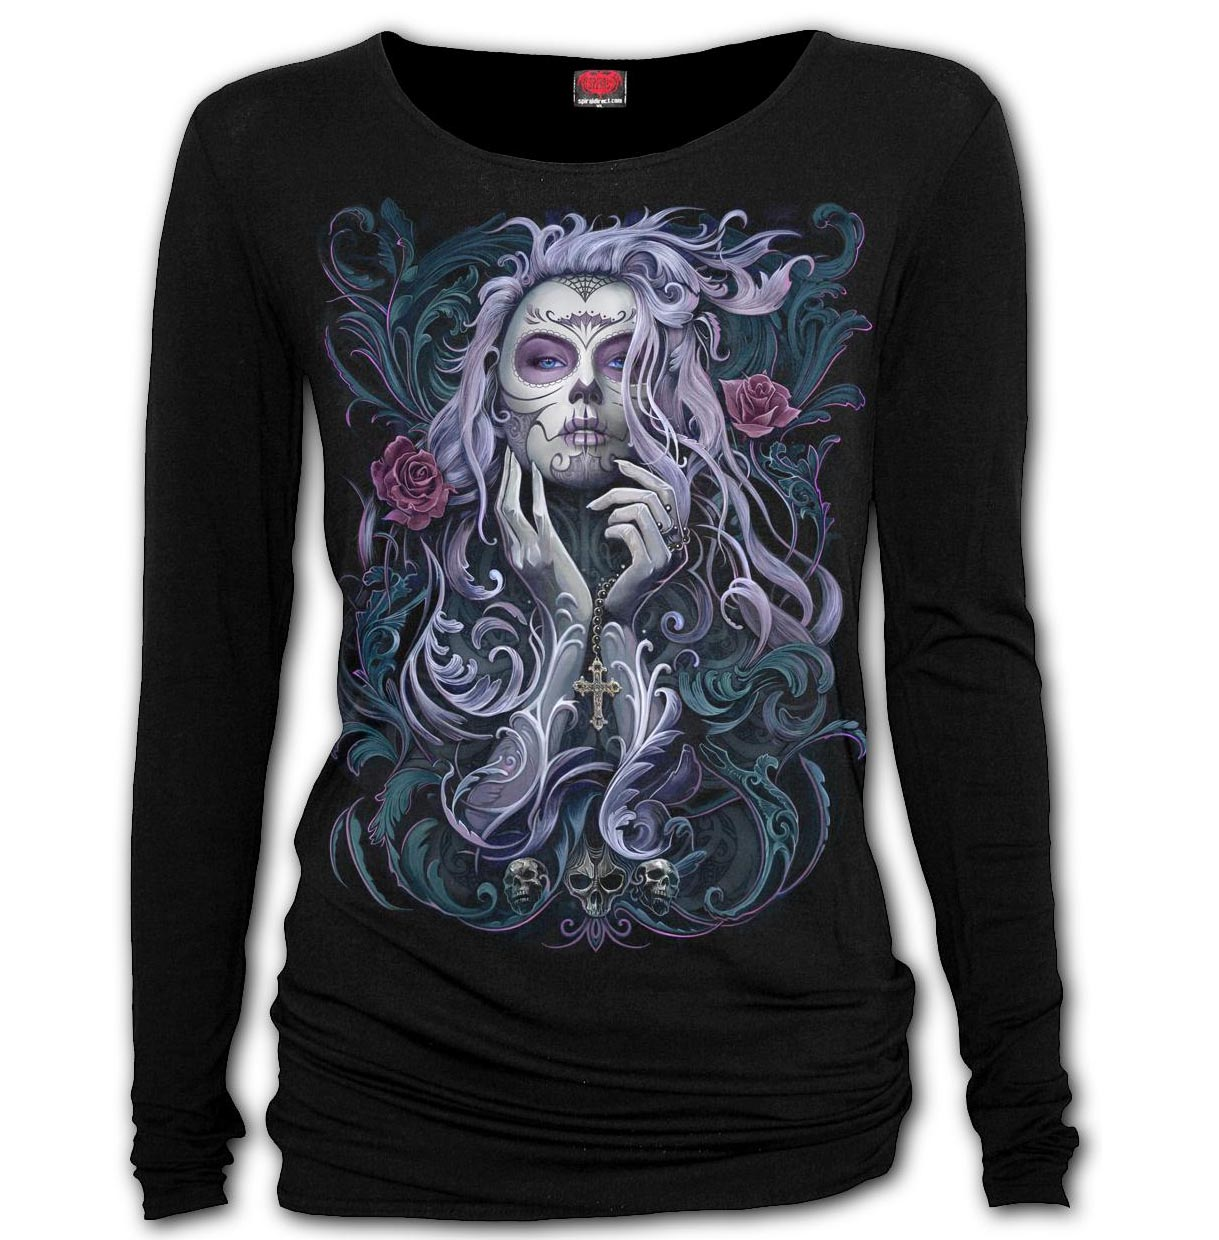 SPIRAL-Ladies-Black-Goth-ROCOCO-SKULL-Day-of-The-Dead-L-Sleeve-Top-All-Sizes thumbnail 5